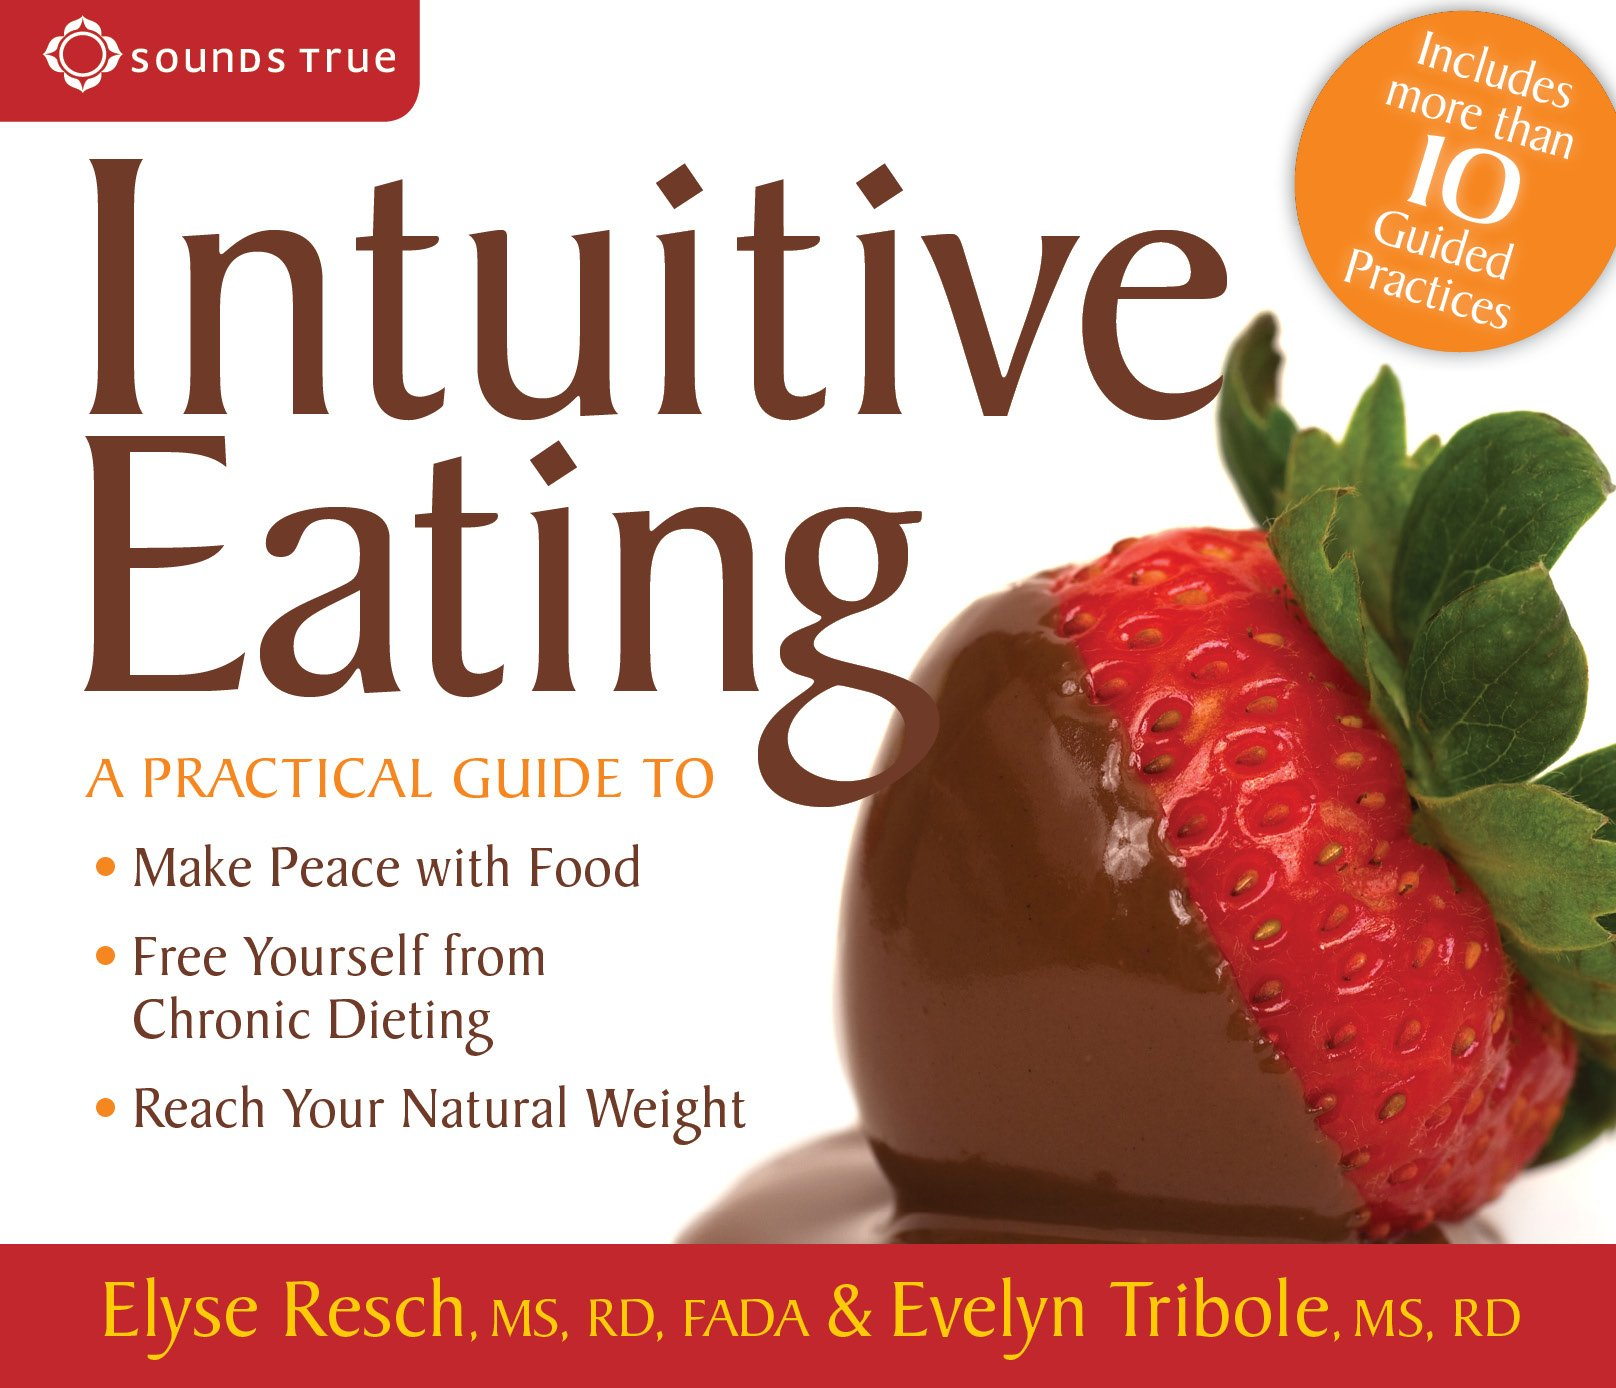 Intuitive Eating: A Practical Guide to Make Peace with Food, Free Yourself from Chronic Dieting, Reach Your Natural Weight by Brand: Sounds True, Incorporated